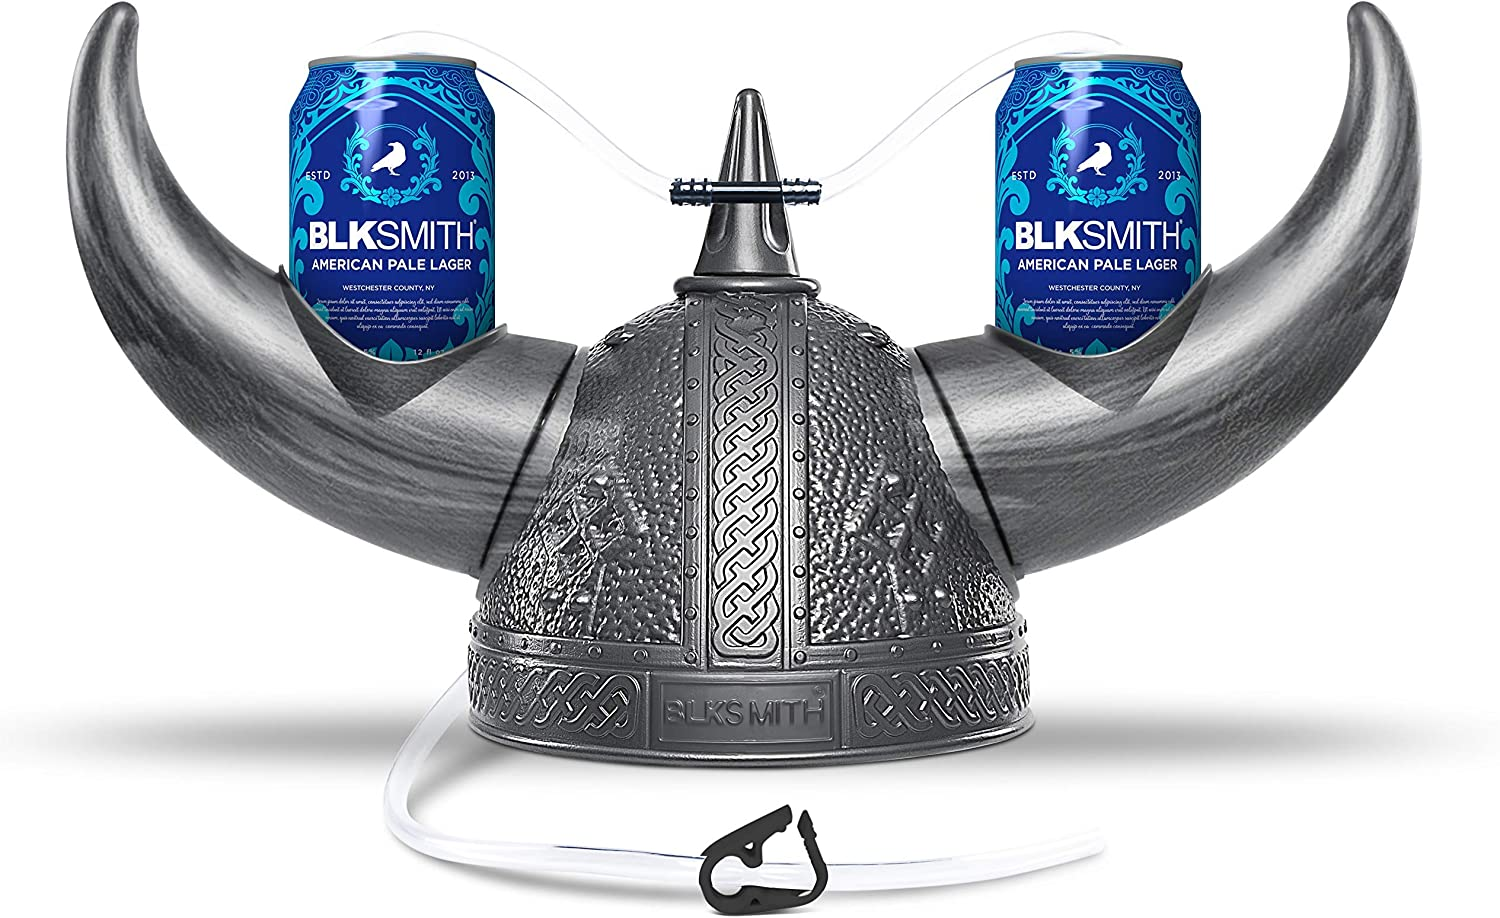 """BLKSMITH Viking Drinking Helmet Guzzler, 2 Soda Can Holders